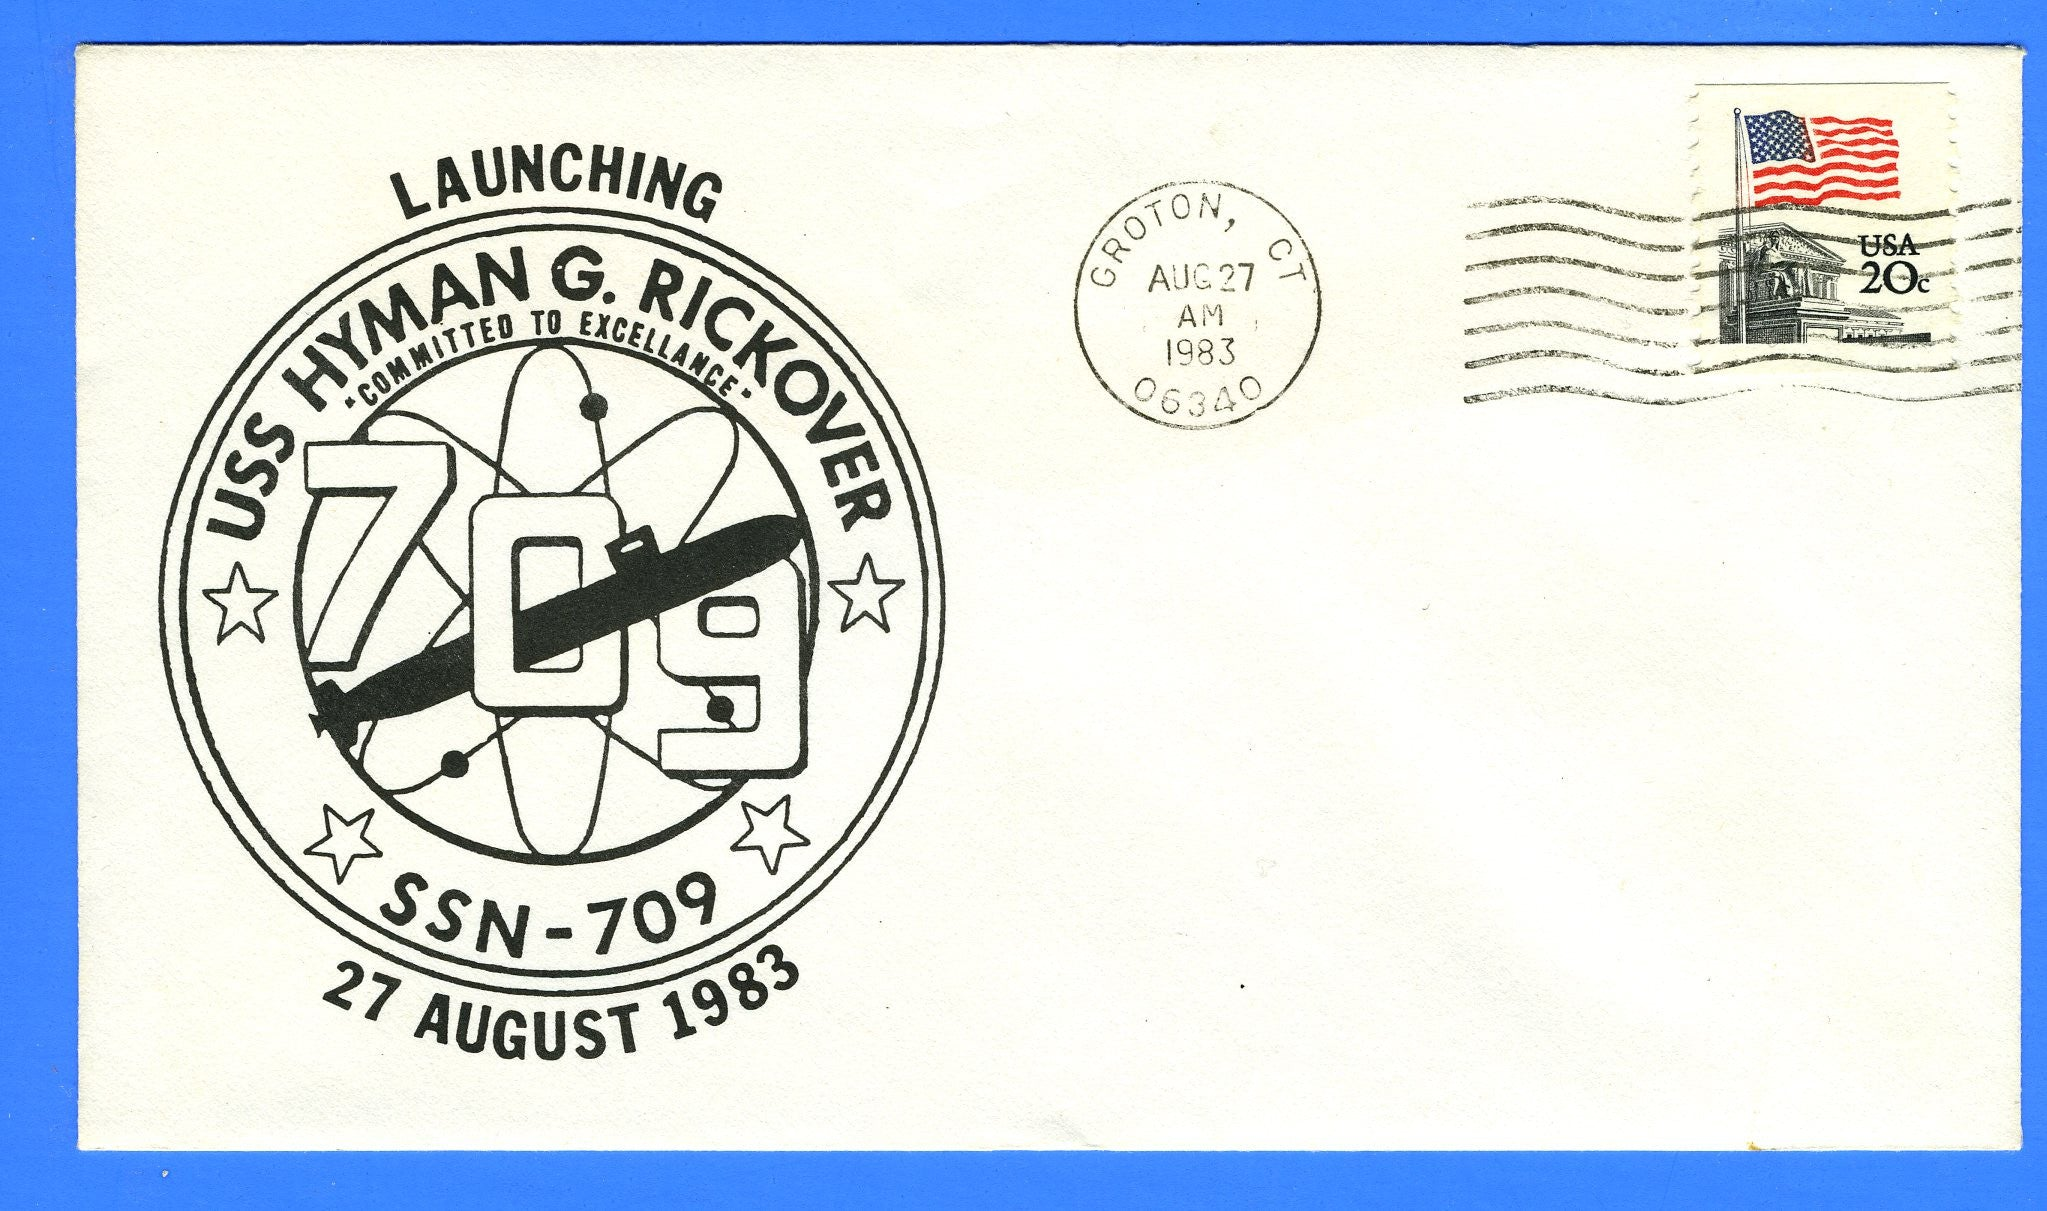 USS Hyman G Rickover SSN-709 Launched Aug 27, 1983 - DRW 46A